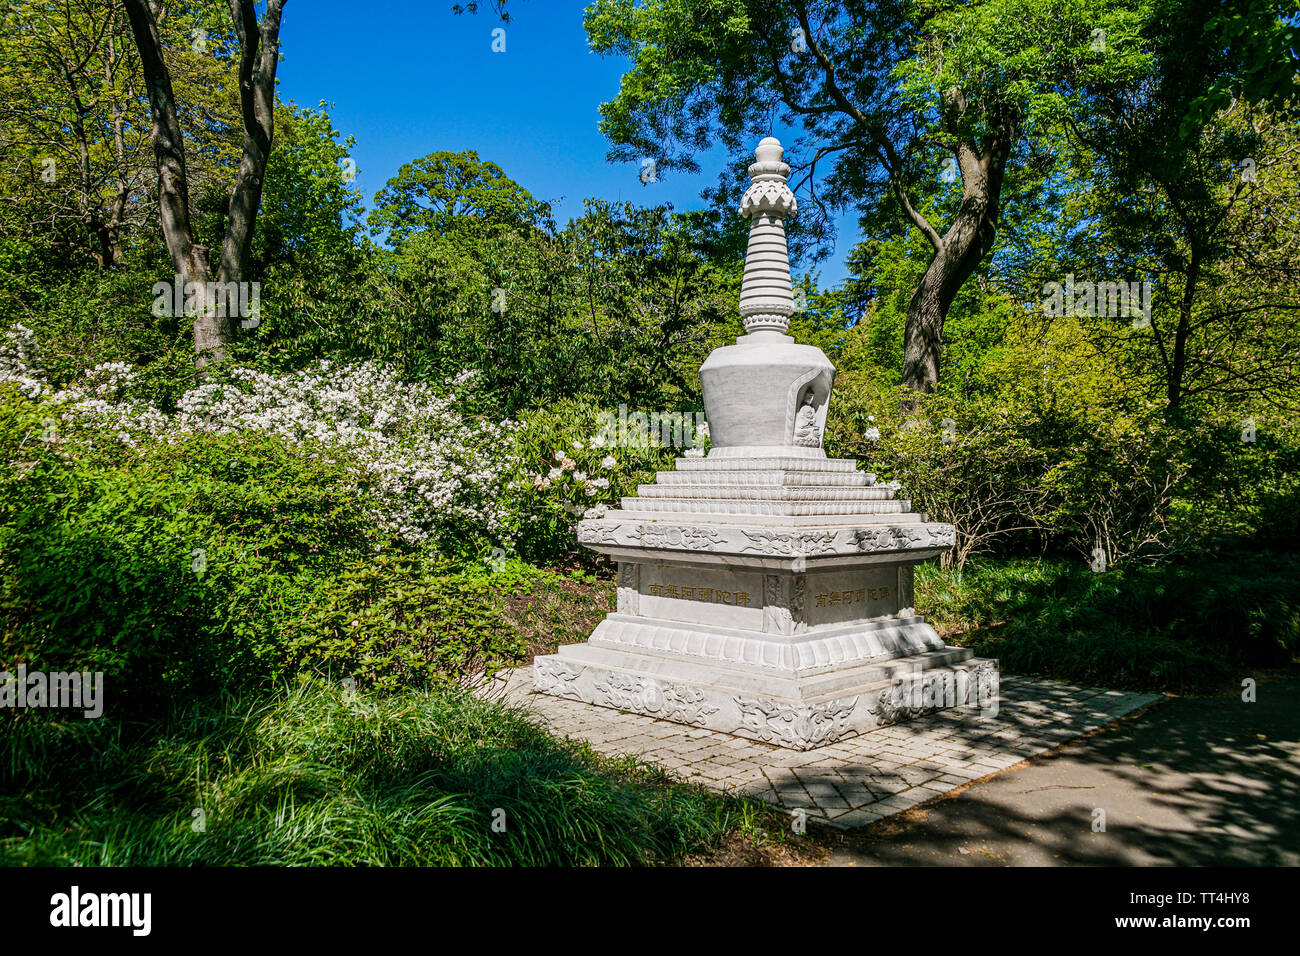 Chinese style statue, Royal Botanic Garden, Edinburgh, Scotland. - Stock Image